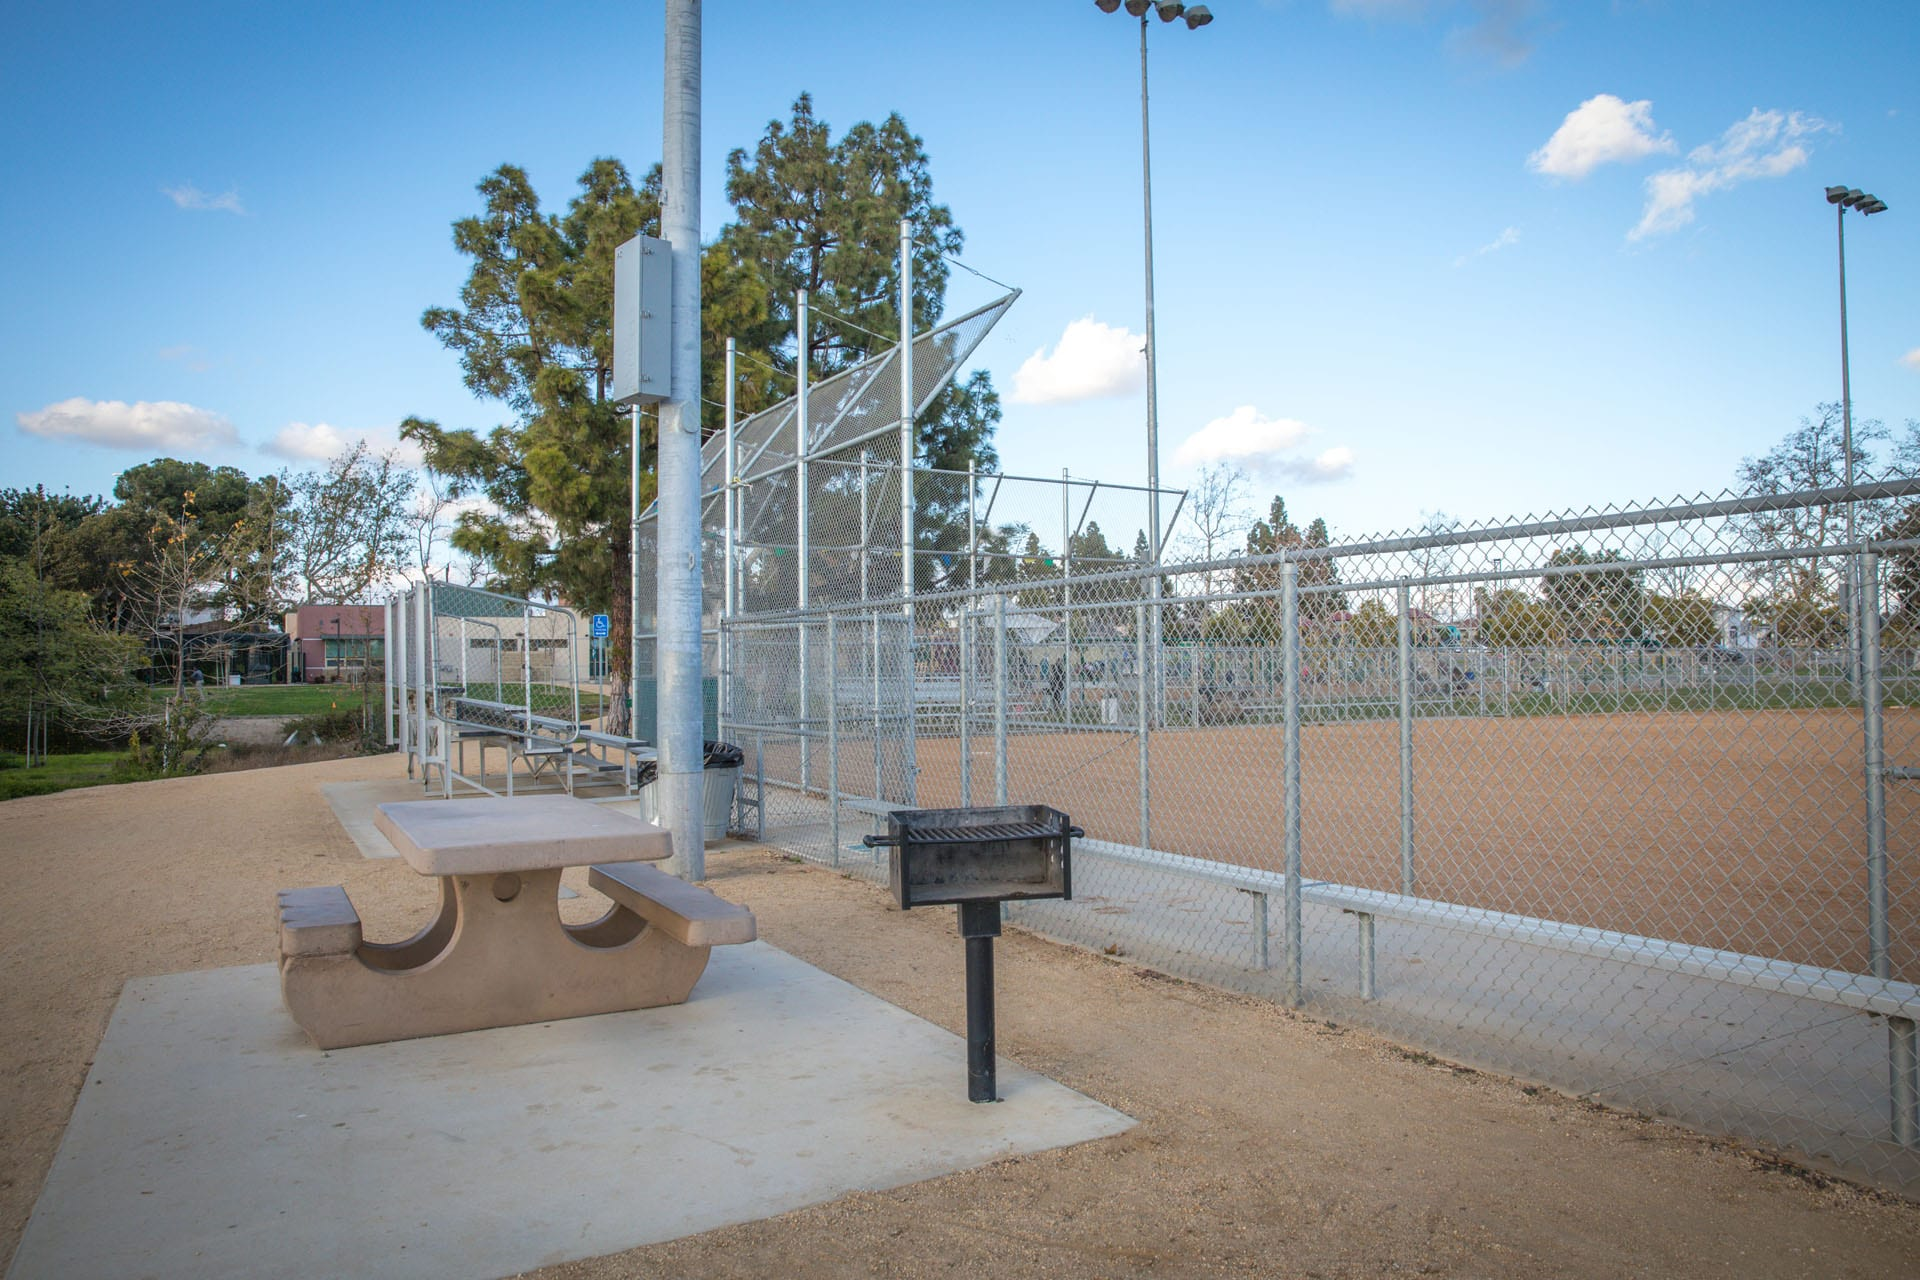 Picnic table and BBQ grill next to a baseball field